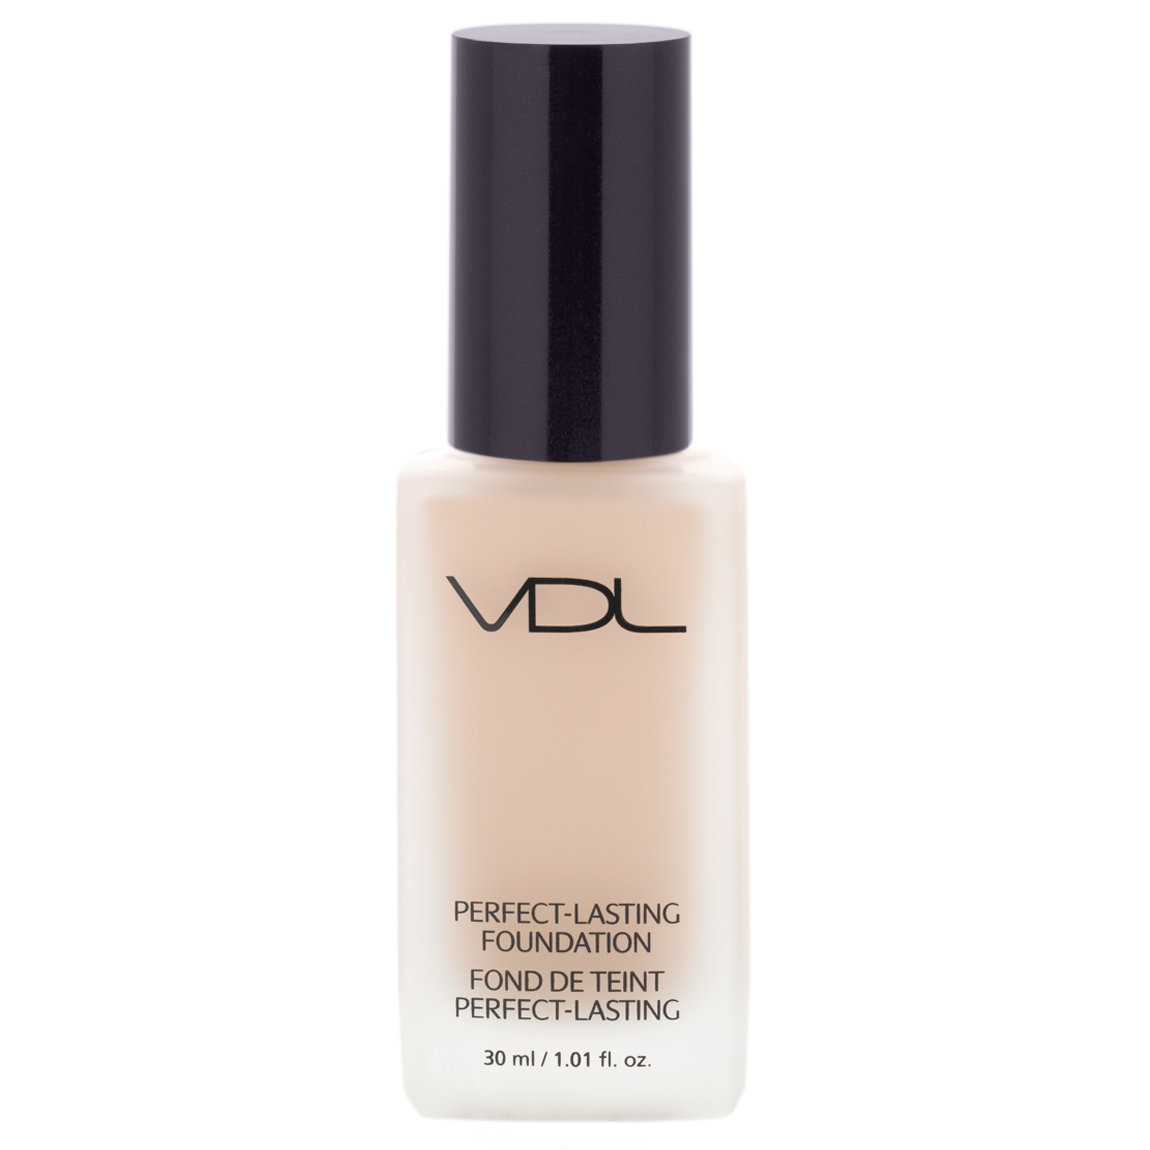 VDL Perfect-Lasting Foundation A02